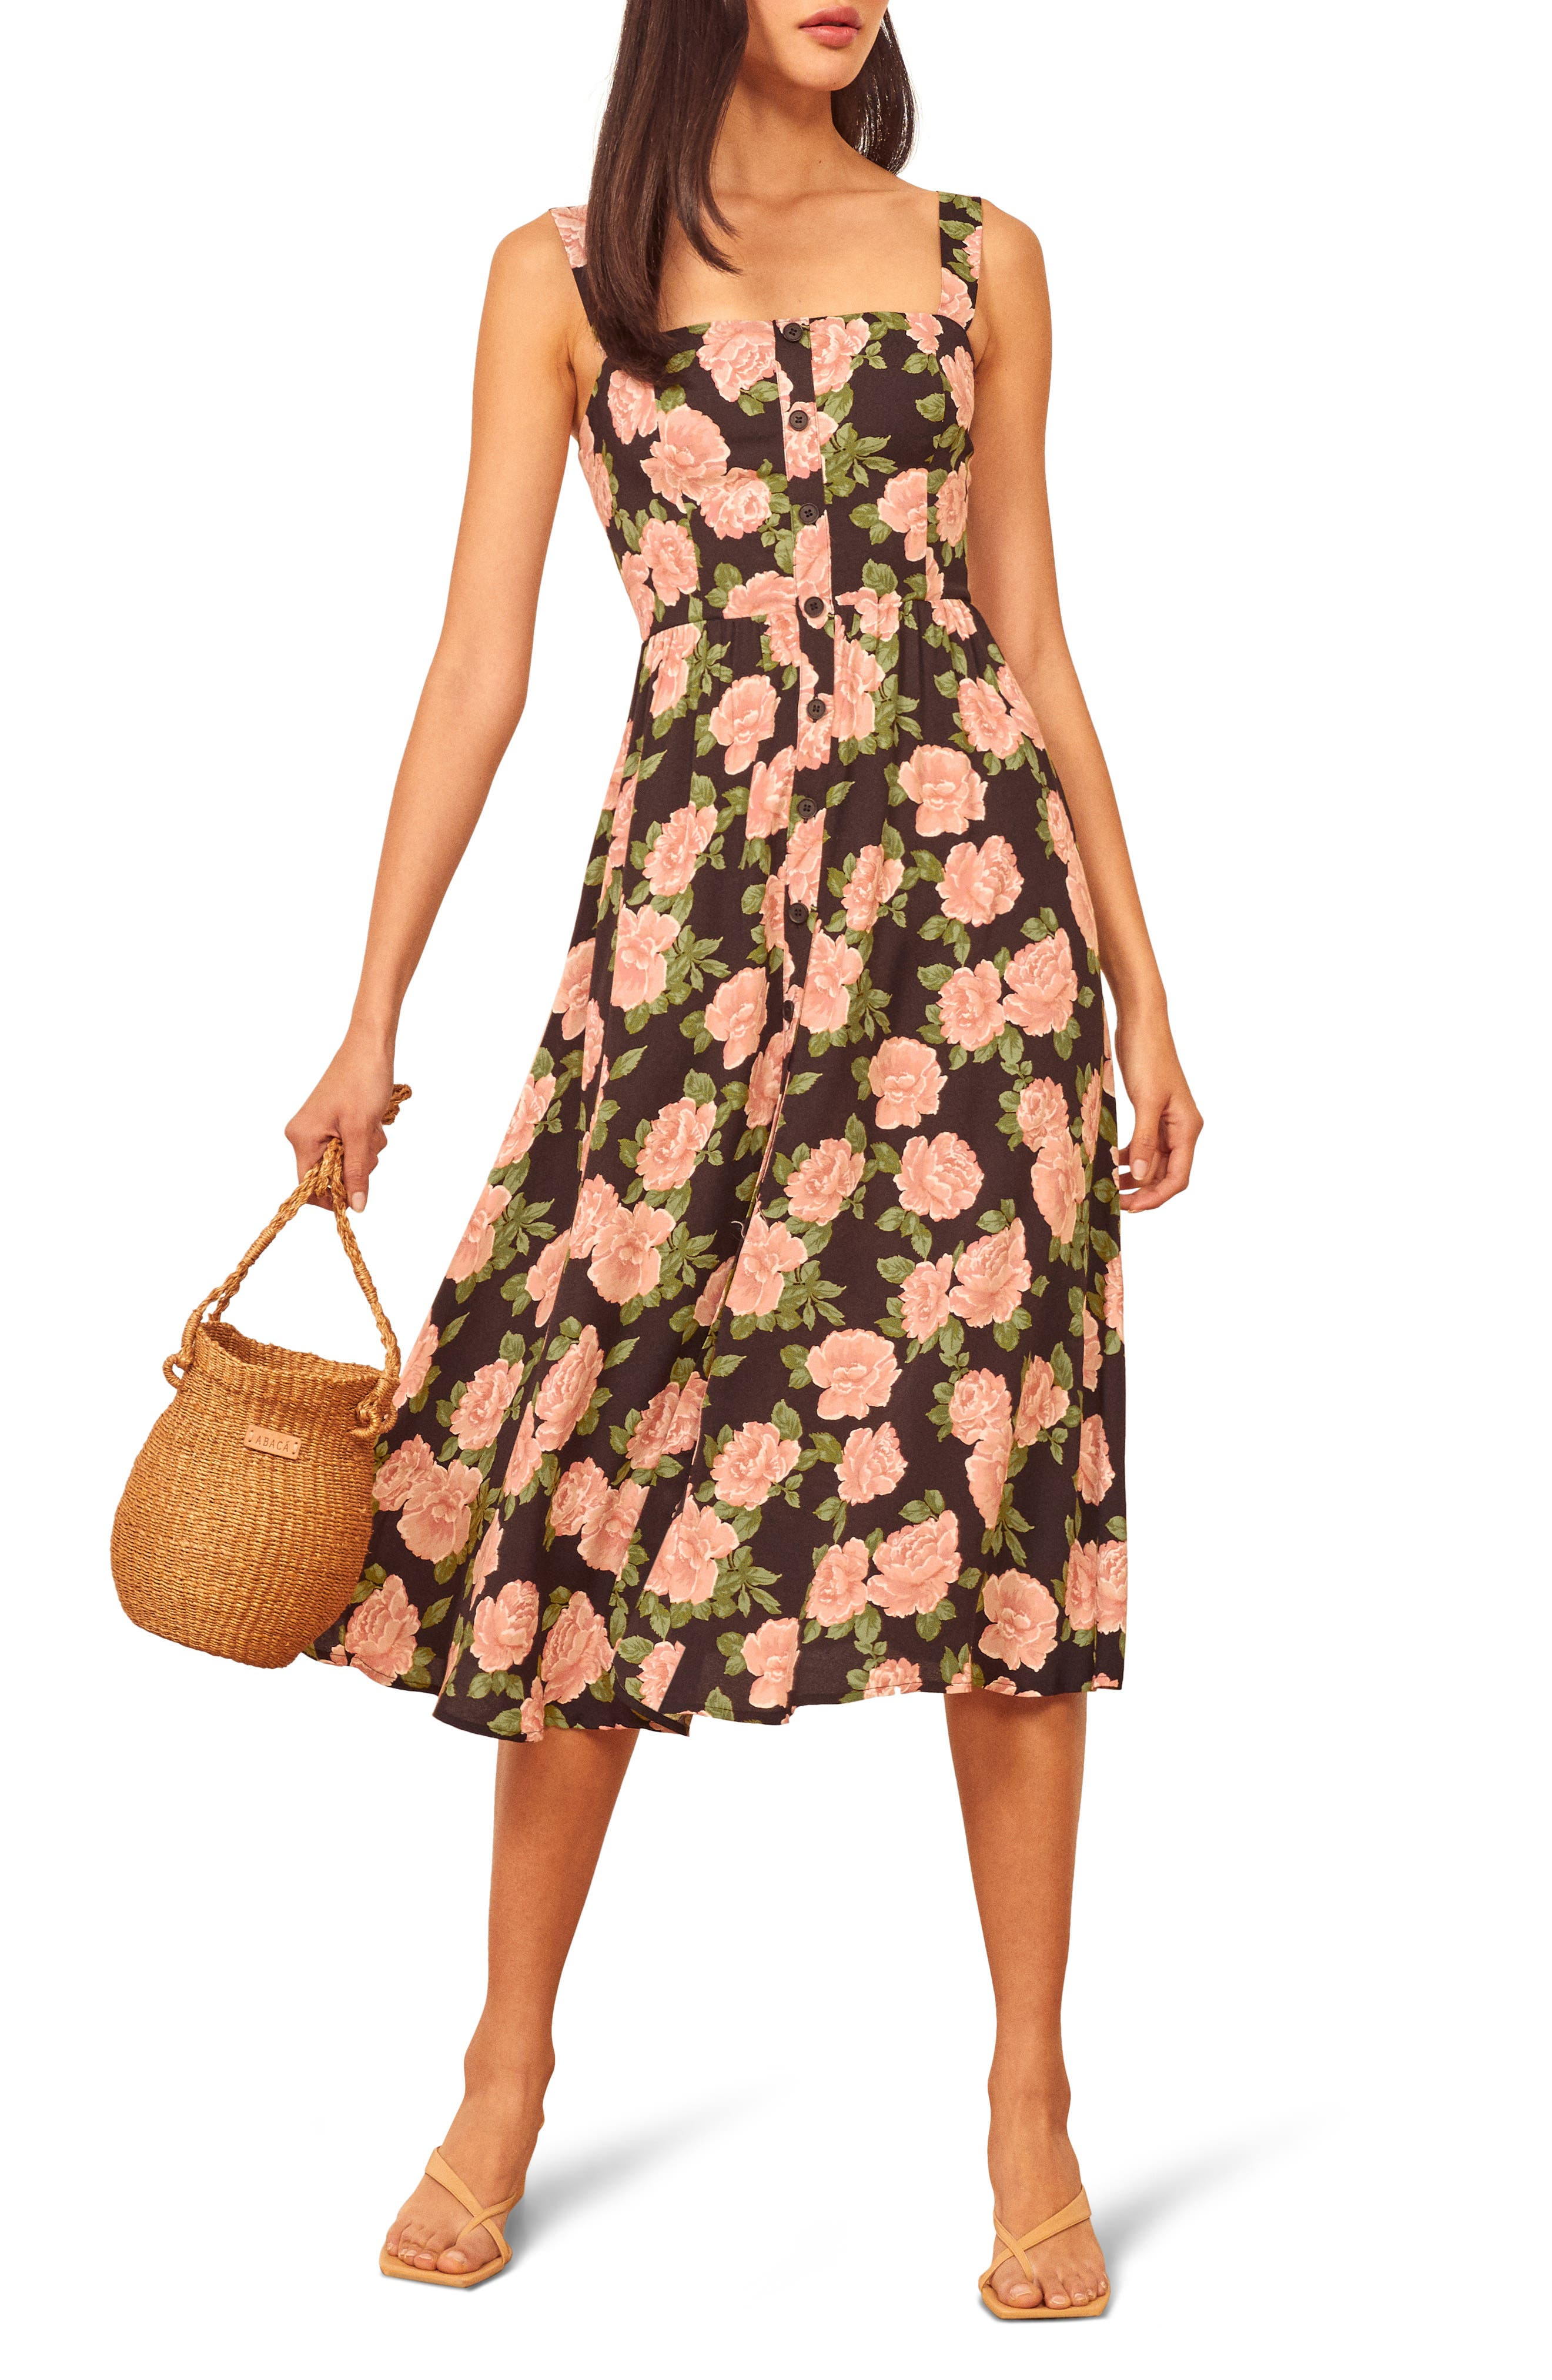 This pretty sundress charms with its rosy print, open neckline and flowy midi silhouette. Style Name: Reformation Saltillo Floral Print Midi Sundress. Style Number: 6054649. Available in stores.